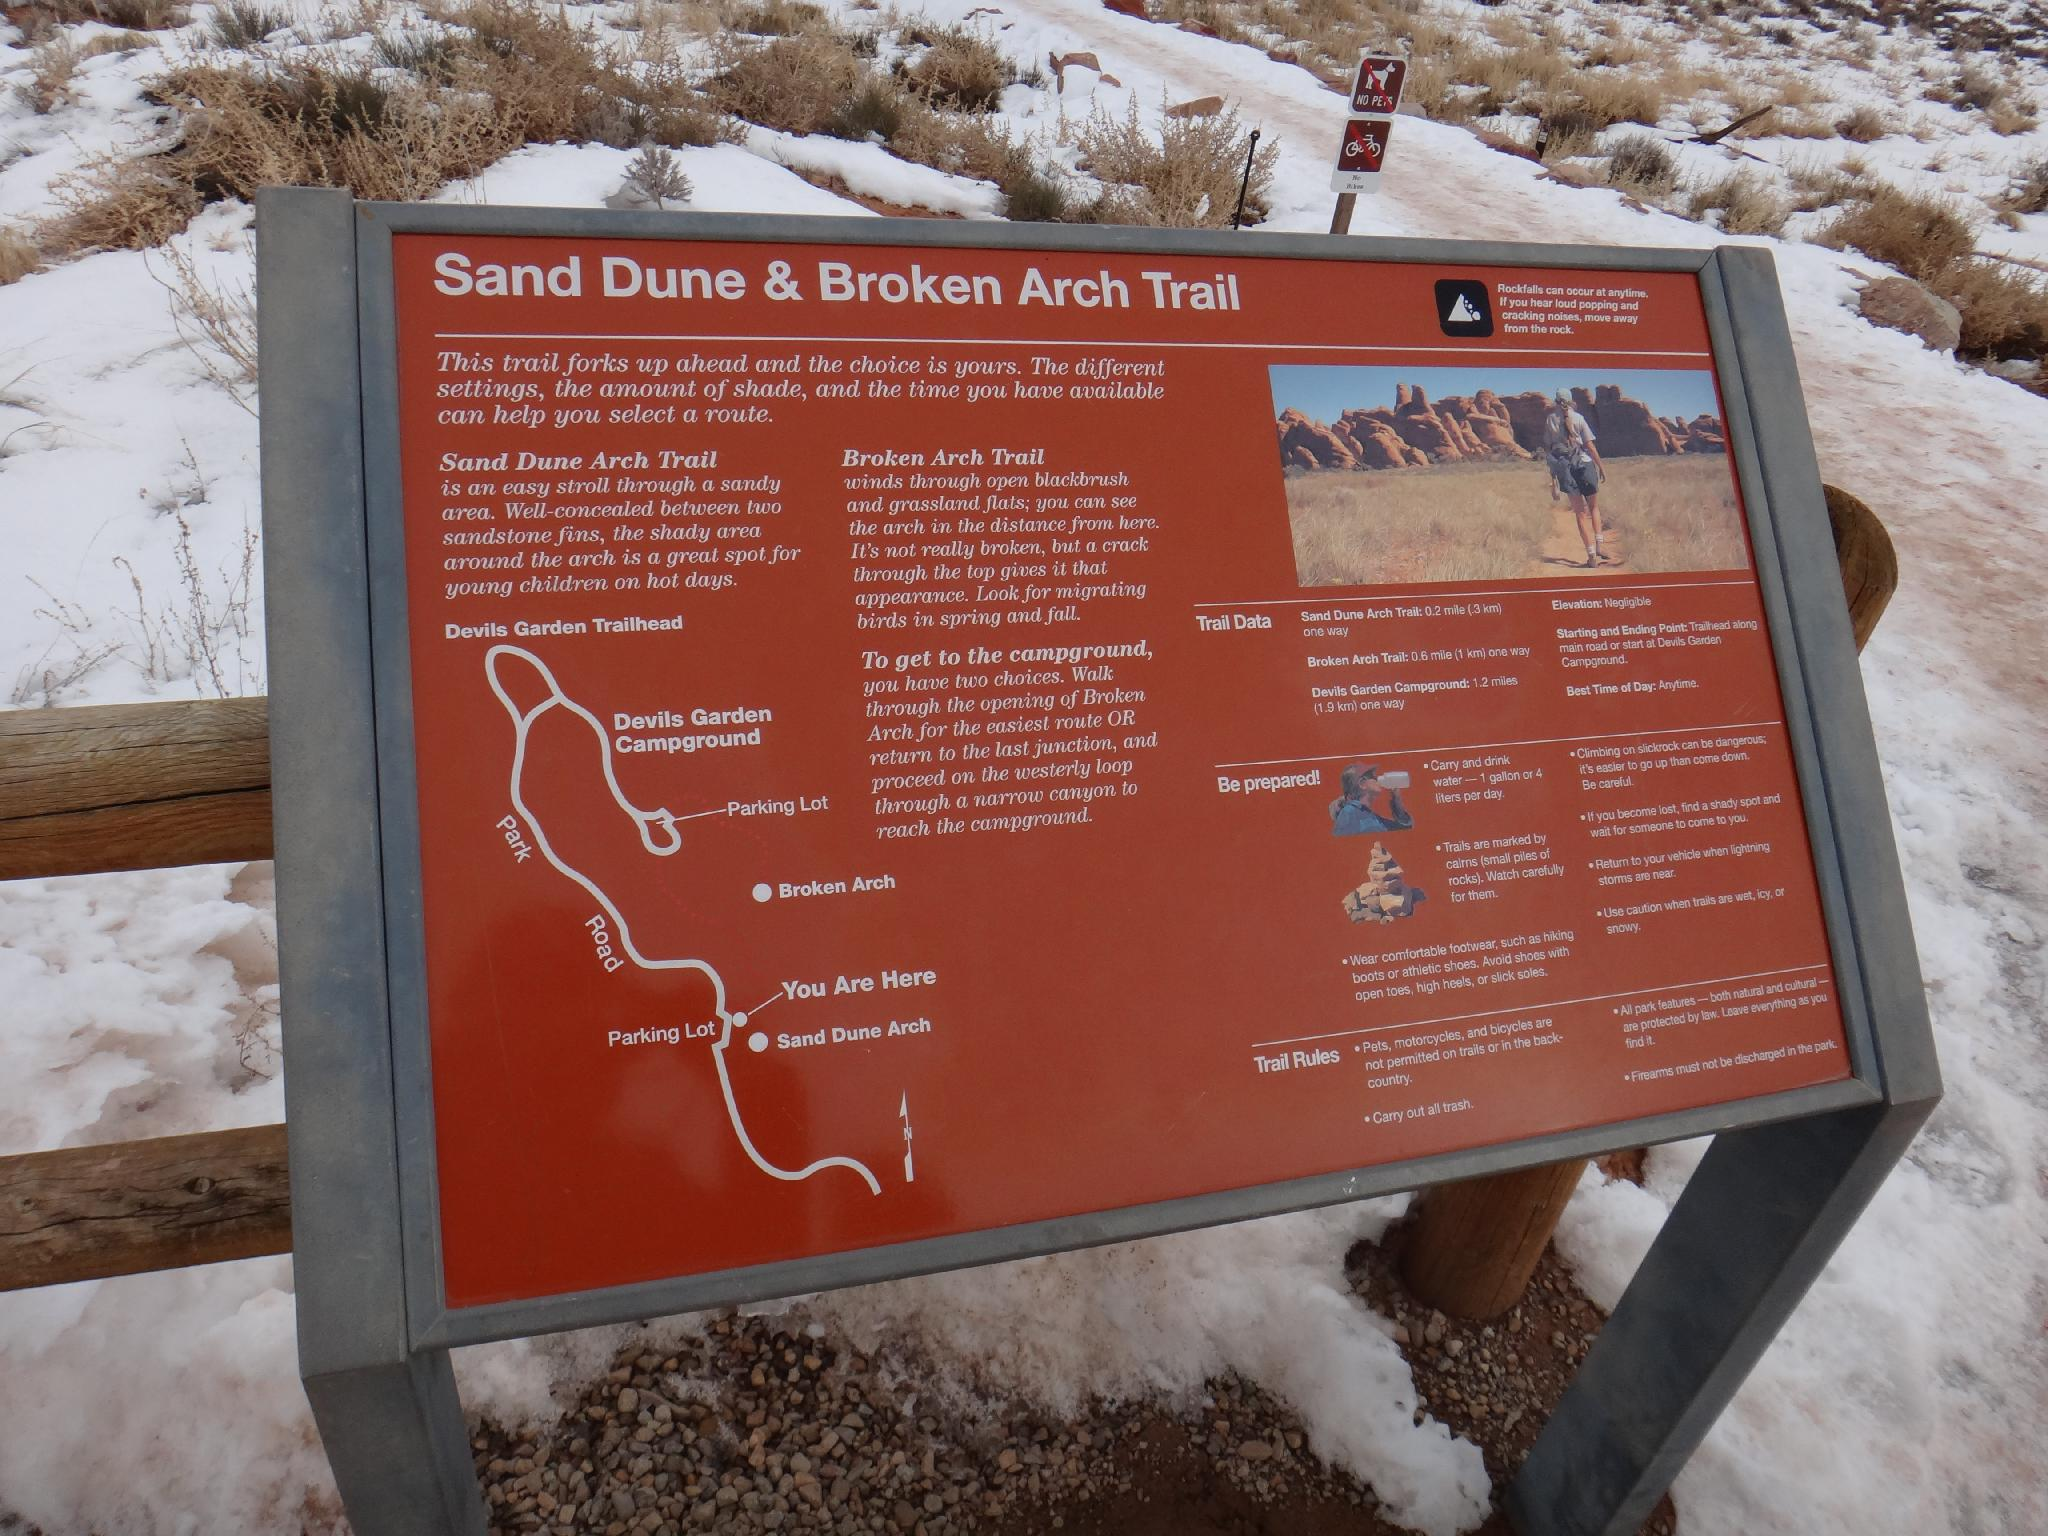 sand dune and broken arch trail information sign road trip ryan